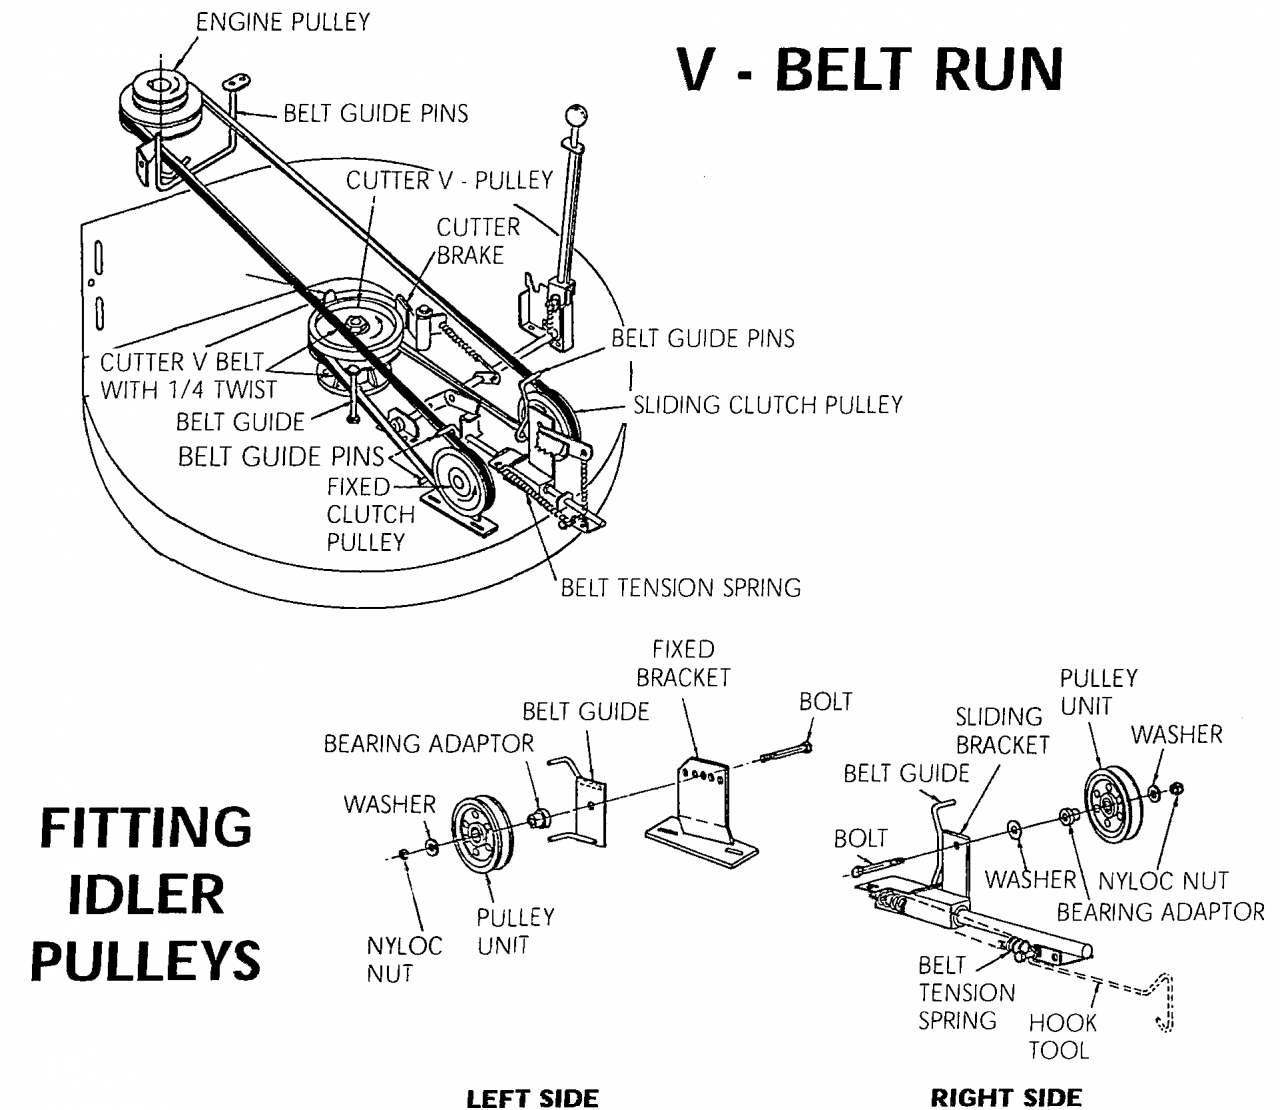 Honda Cl360 Wiring Diagram. Honda. Auto Wiring Diagram